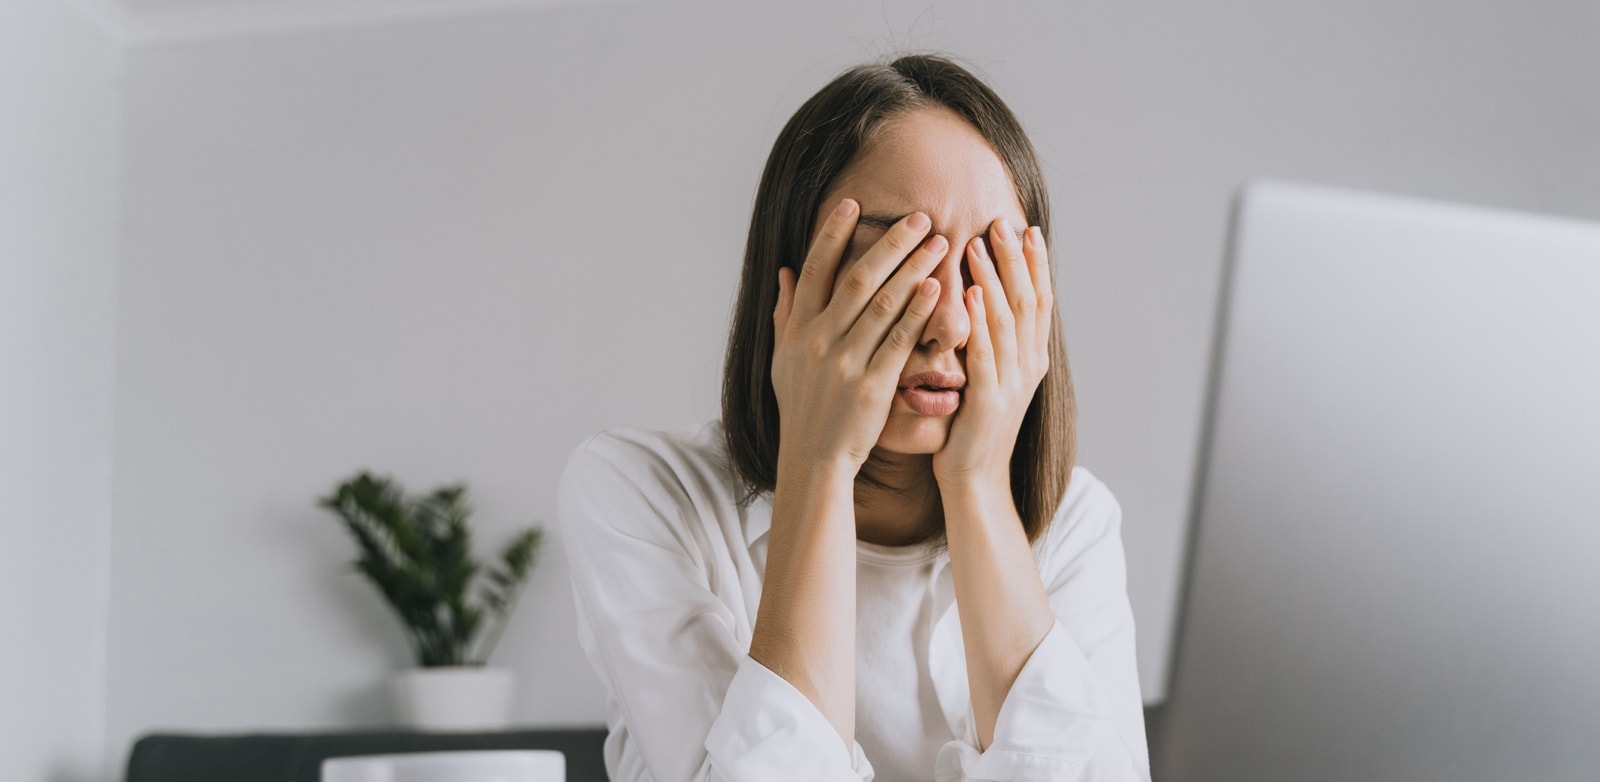 Can contact lenses cause headaches? Why?